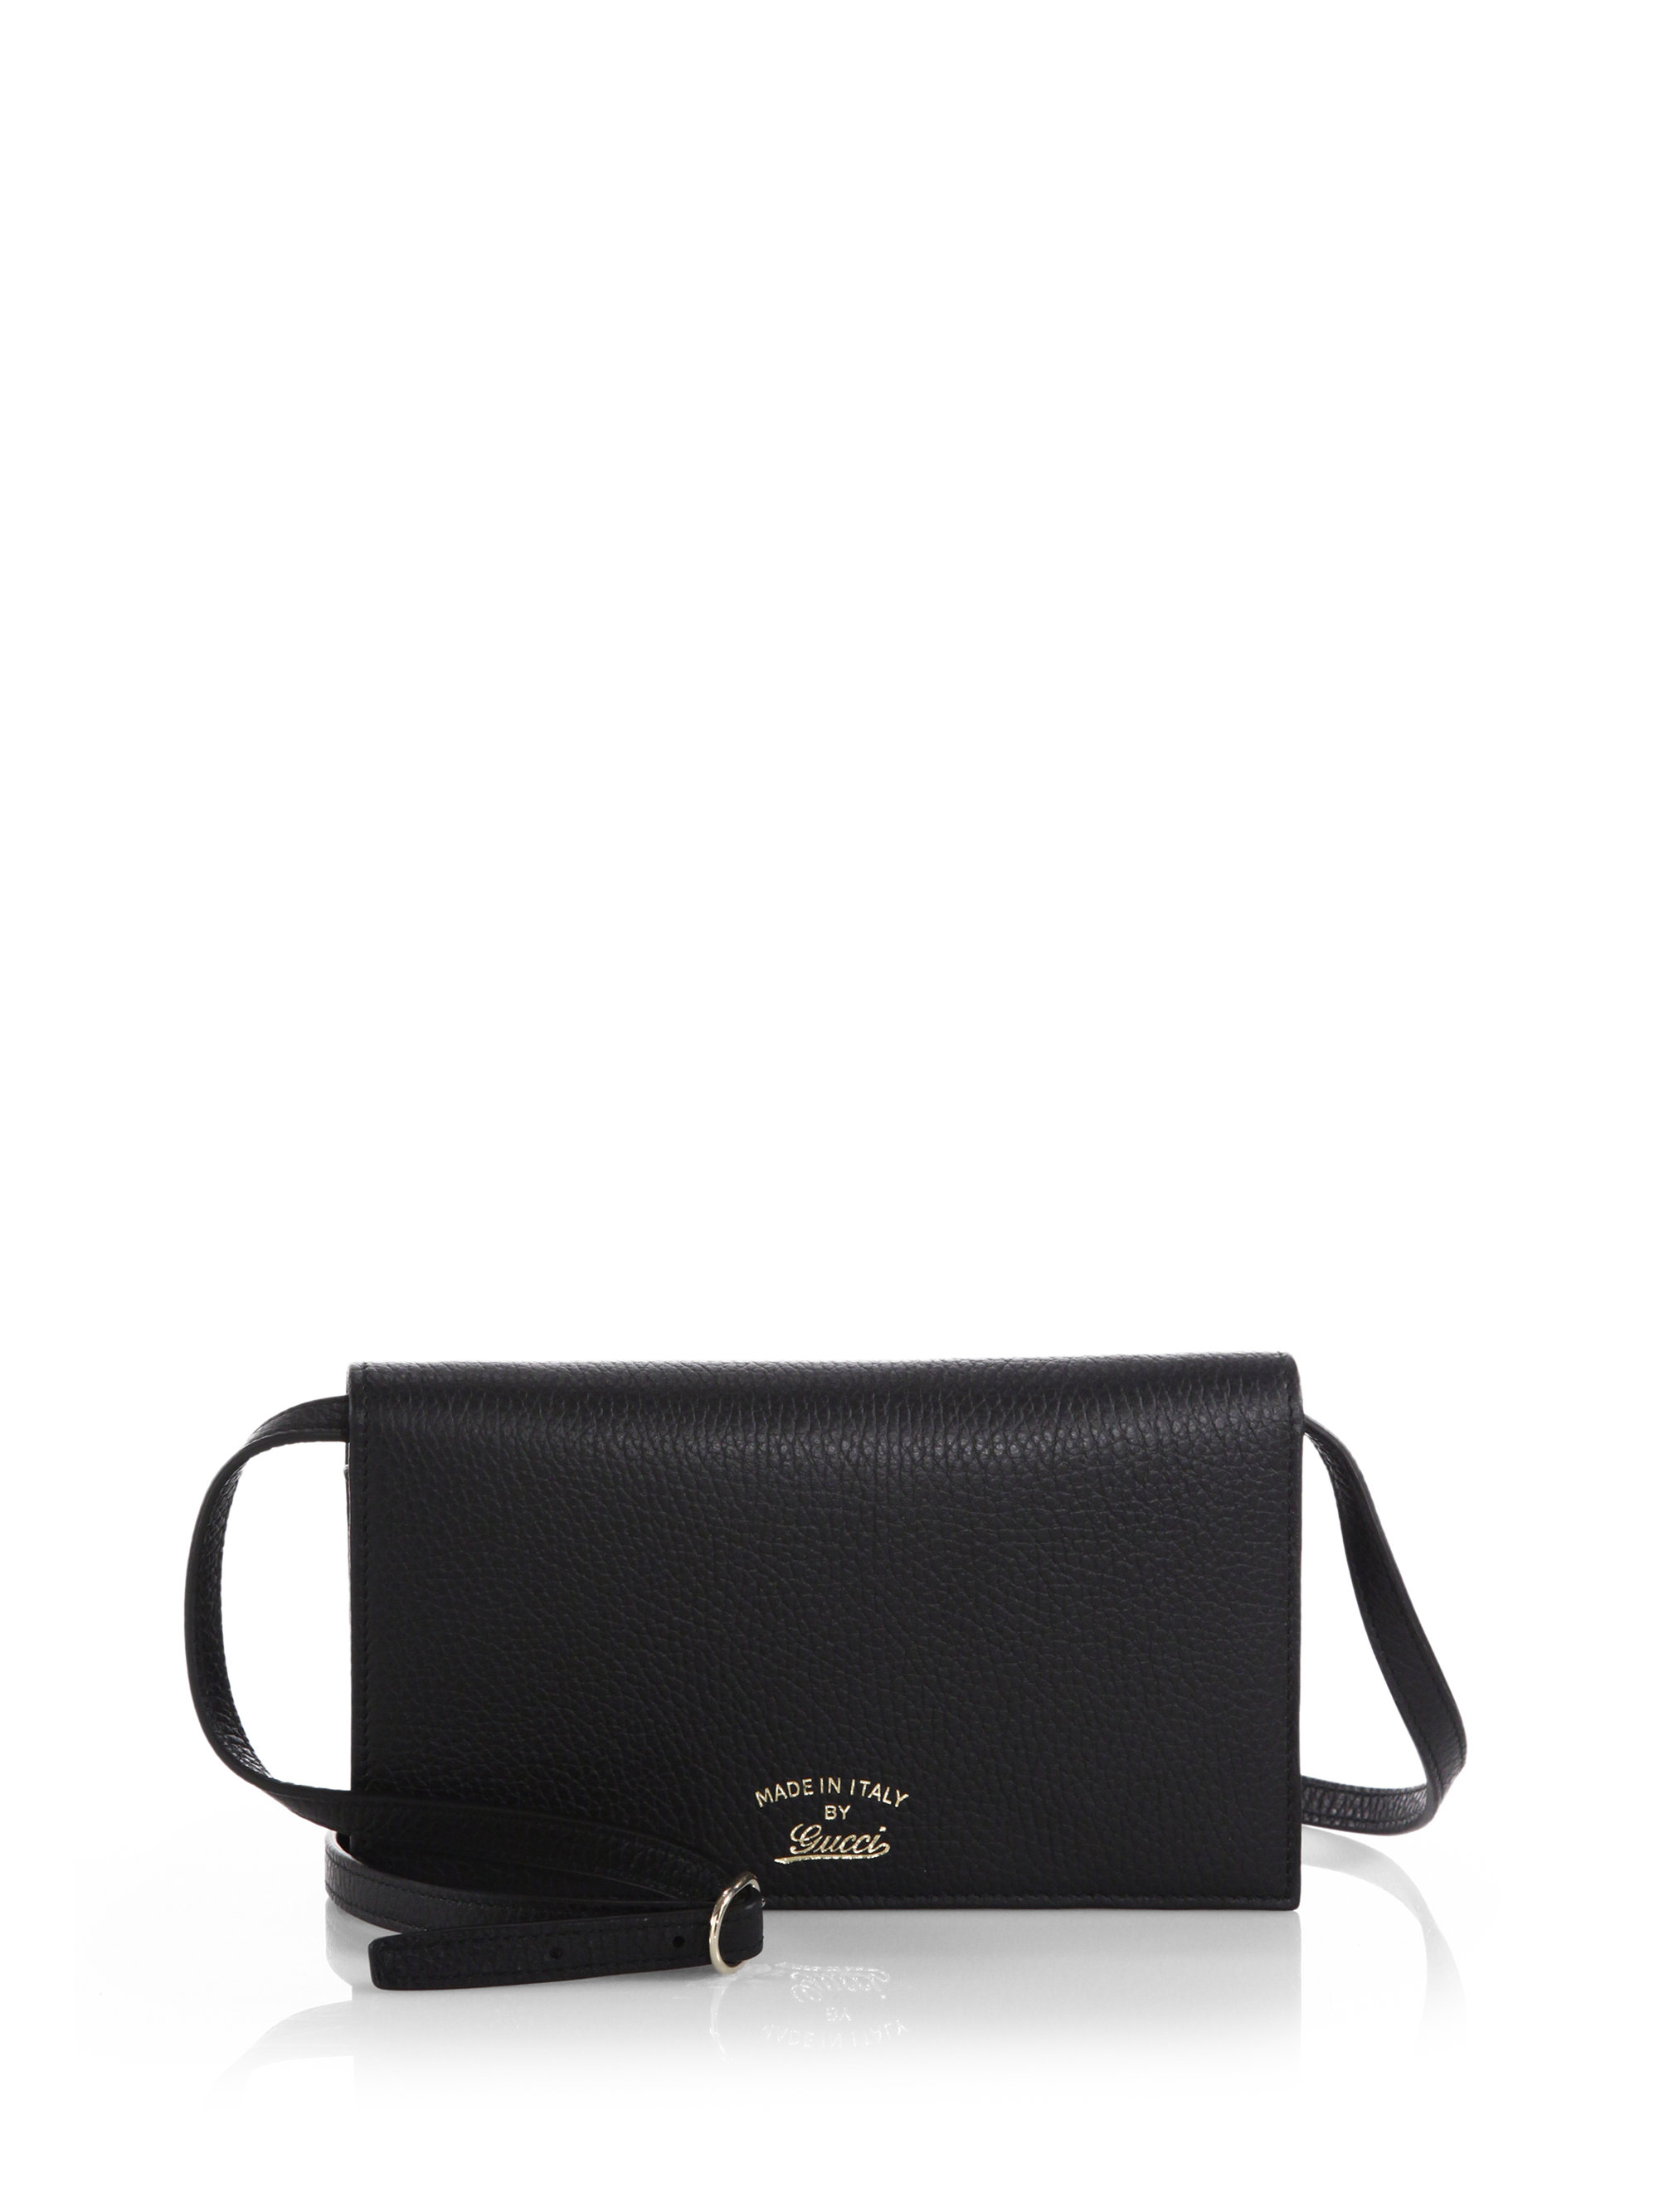 2670d455f51719 Gucci Swing Leather Wallet With Strap Review | Stanford Center for ...